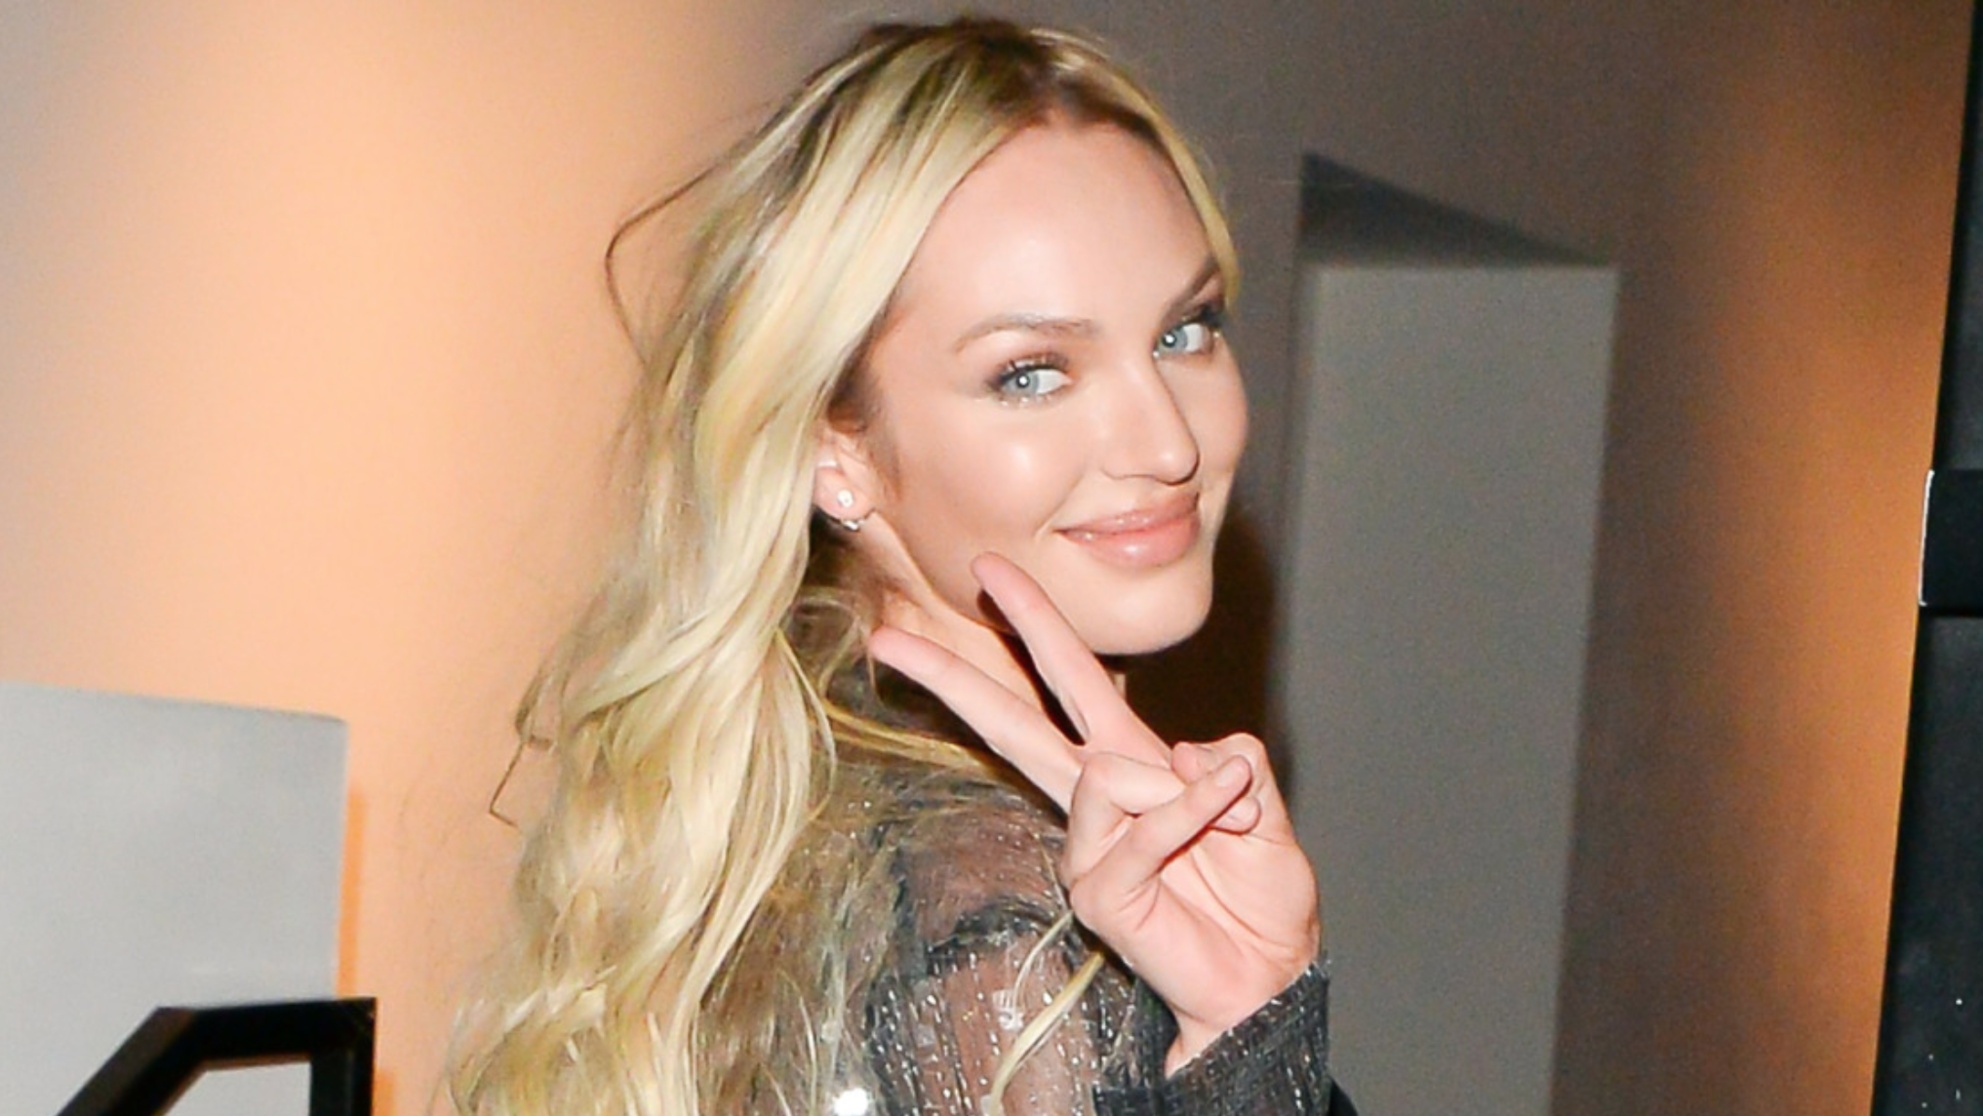 Candice Swanepoel Won't Apologize for Her Body After Baby: 'I'm Not Ashamed' of My 'Tummy'